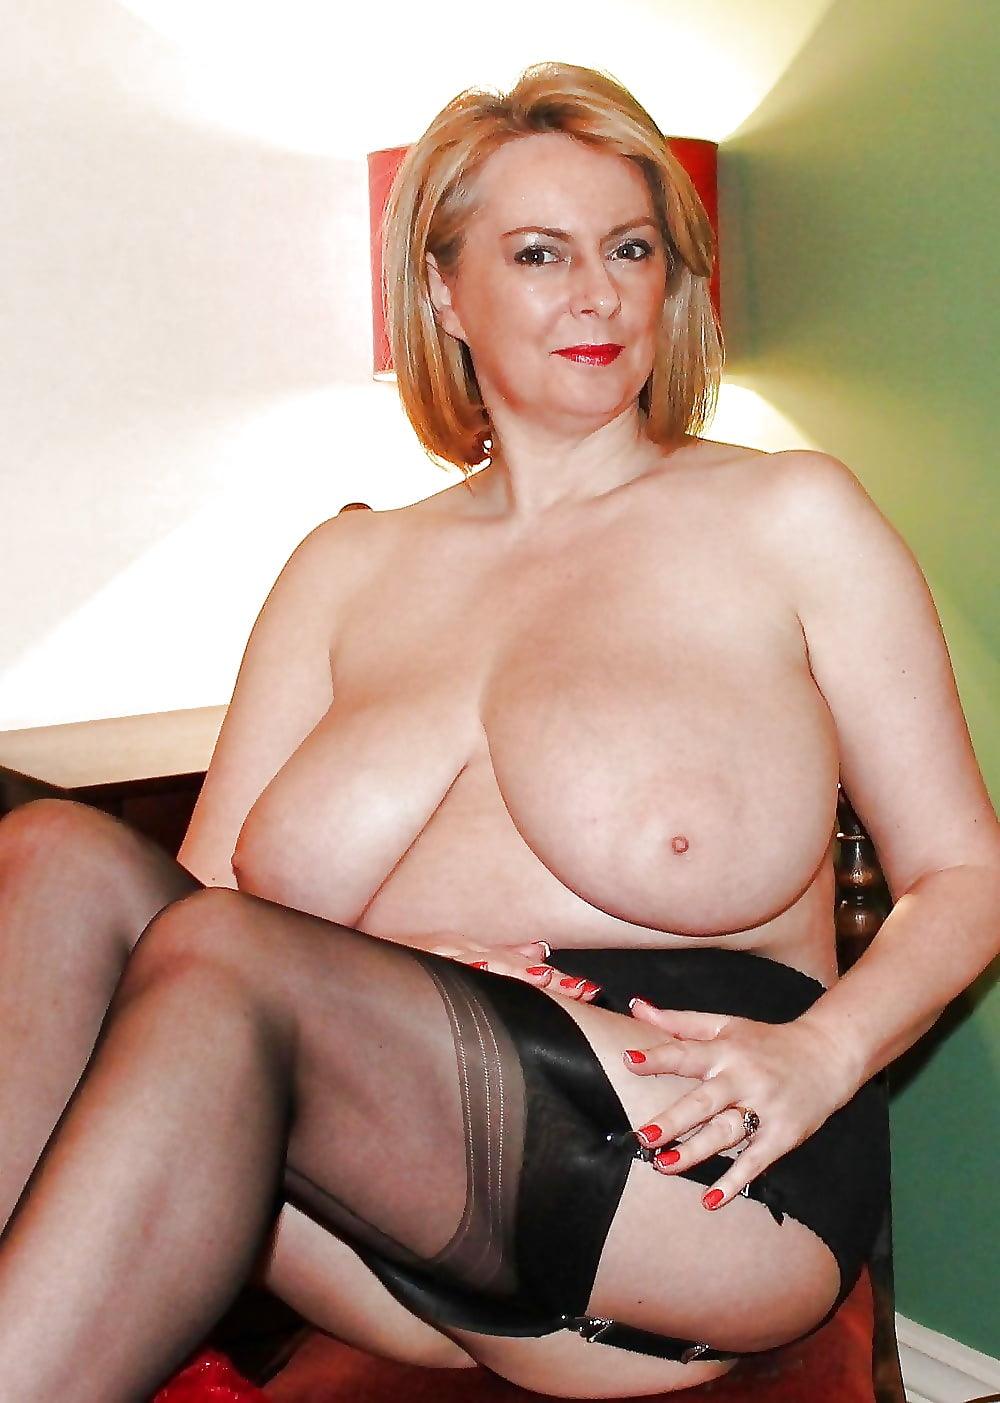 Busty mature woman stock photos and images